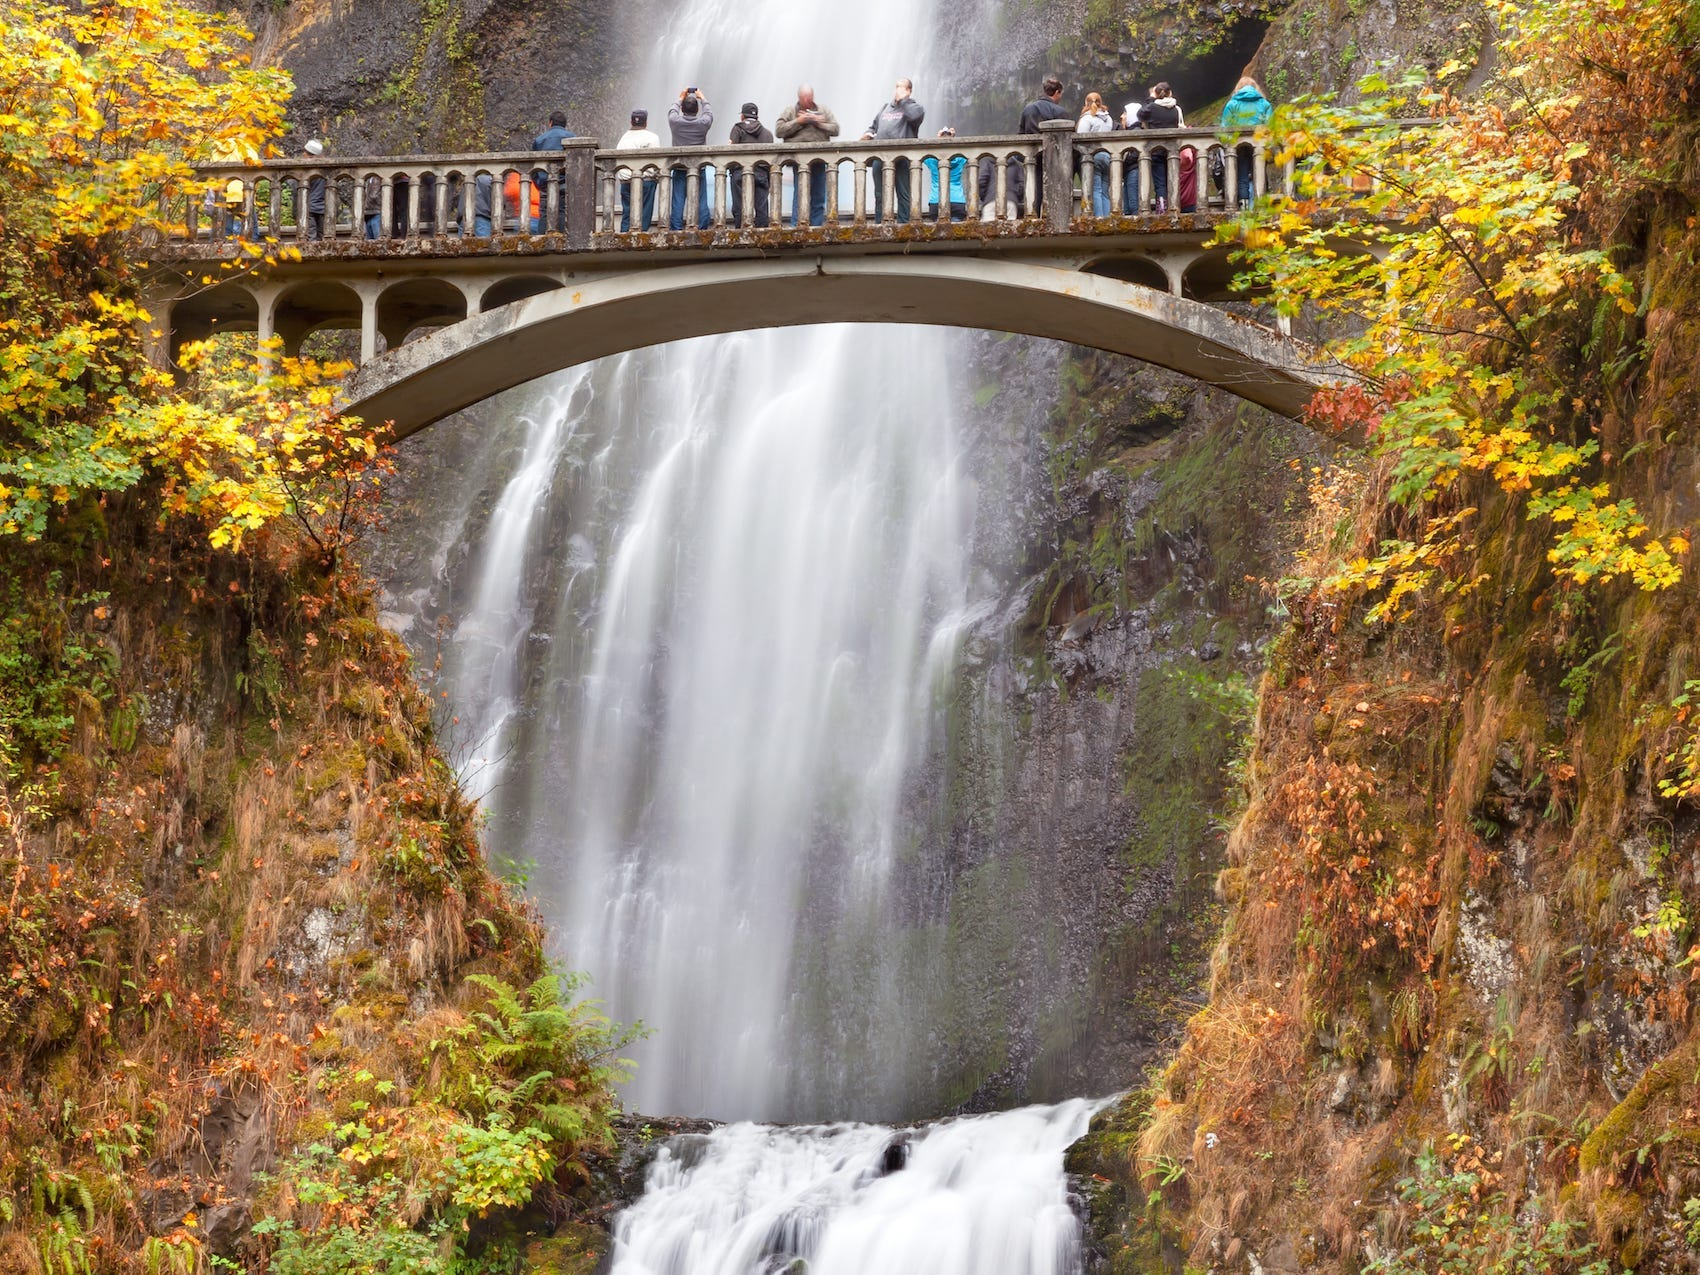 Slide 16 of 17: Columbia River Gorge gives visitors sweeping views of the Cascade Mountains with their colorful and bright foliage in the fall months.You can take scenic drives, hike, or even get in the water with a kayak, canoe, or boat.